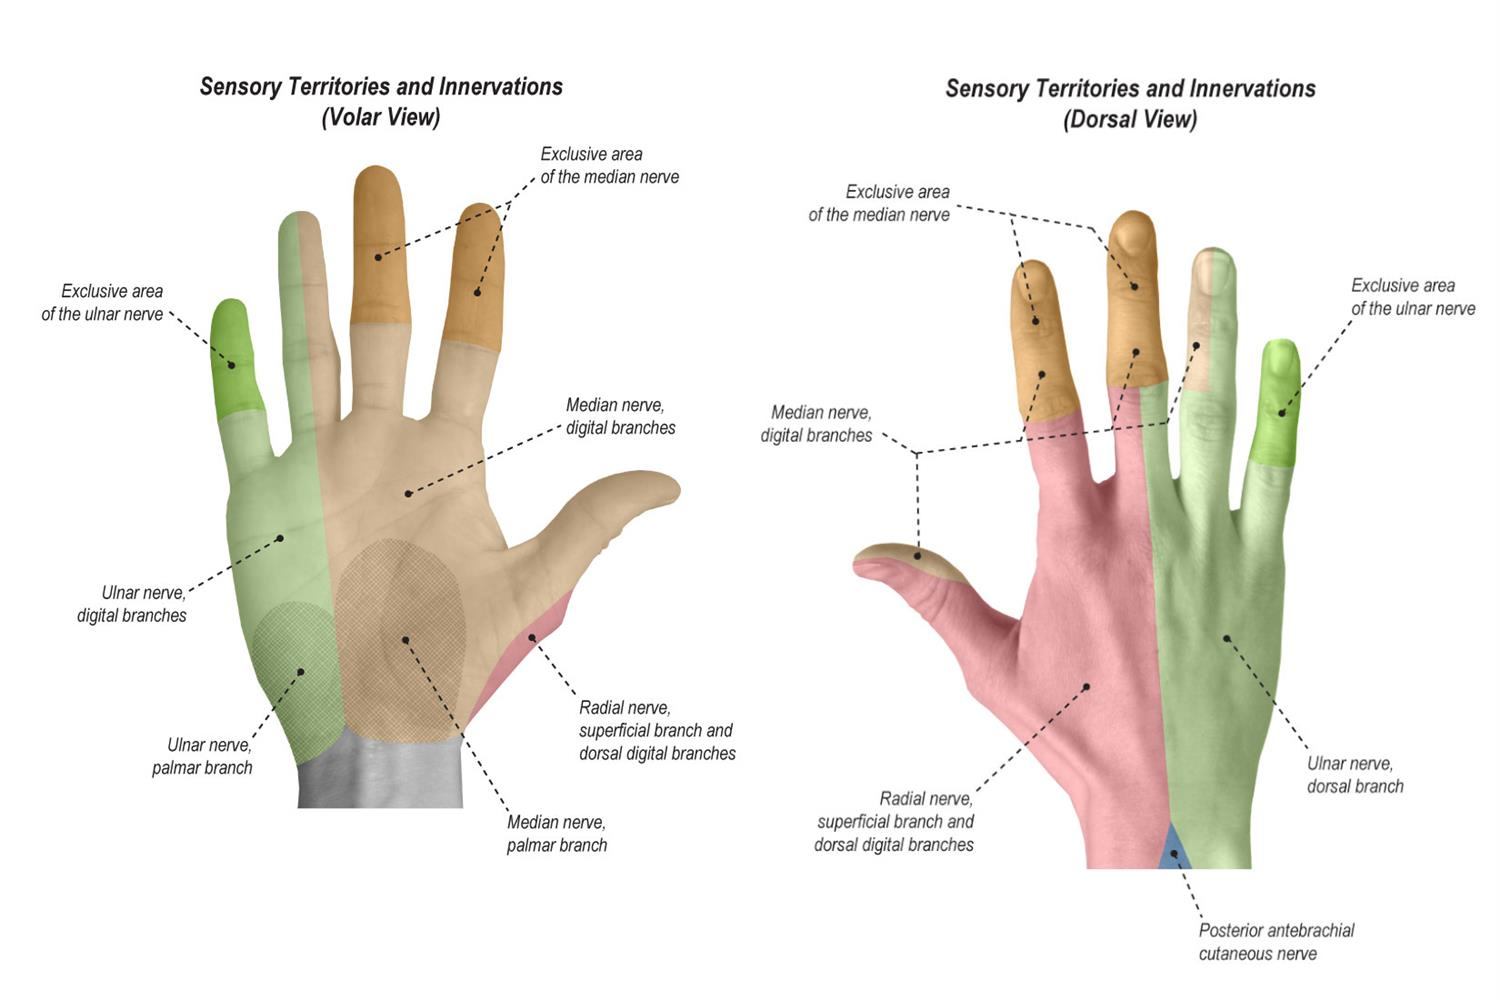 hight resolution of sensation sensory territories and innervations of the hand